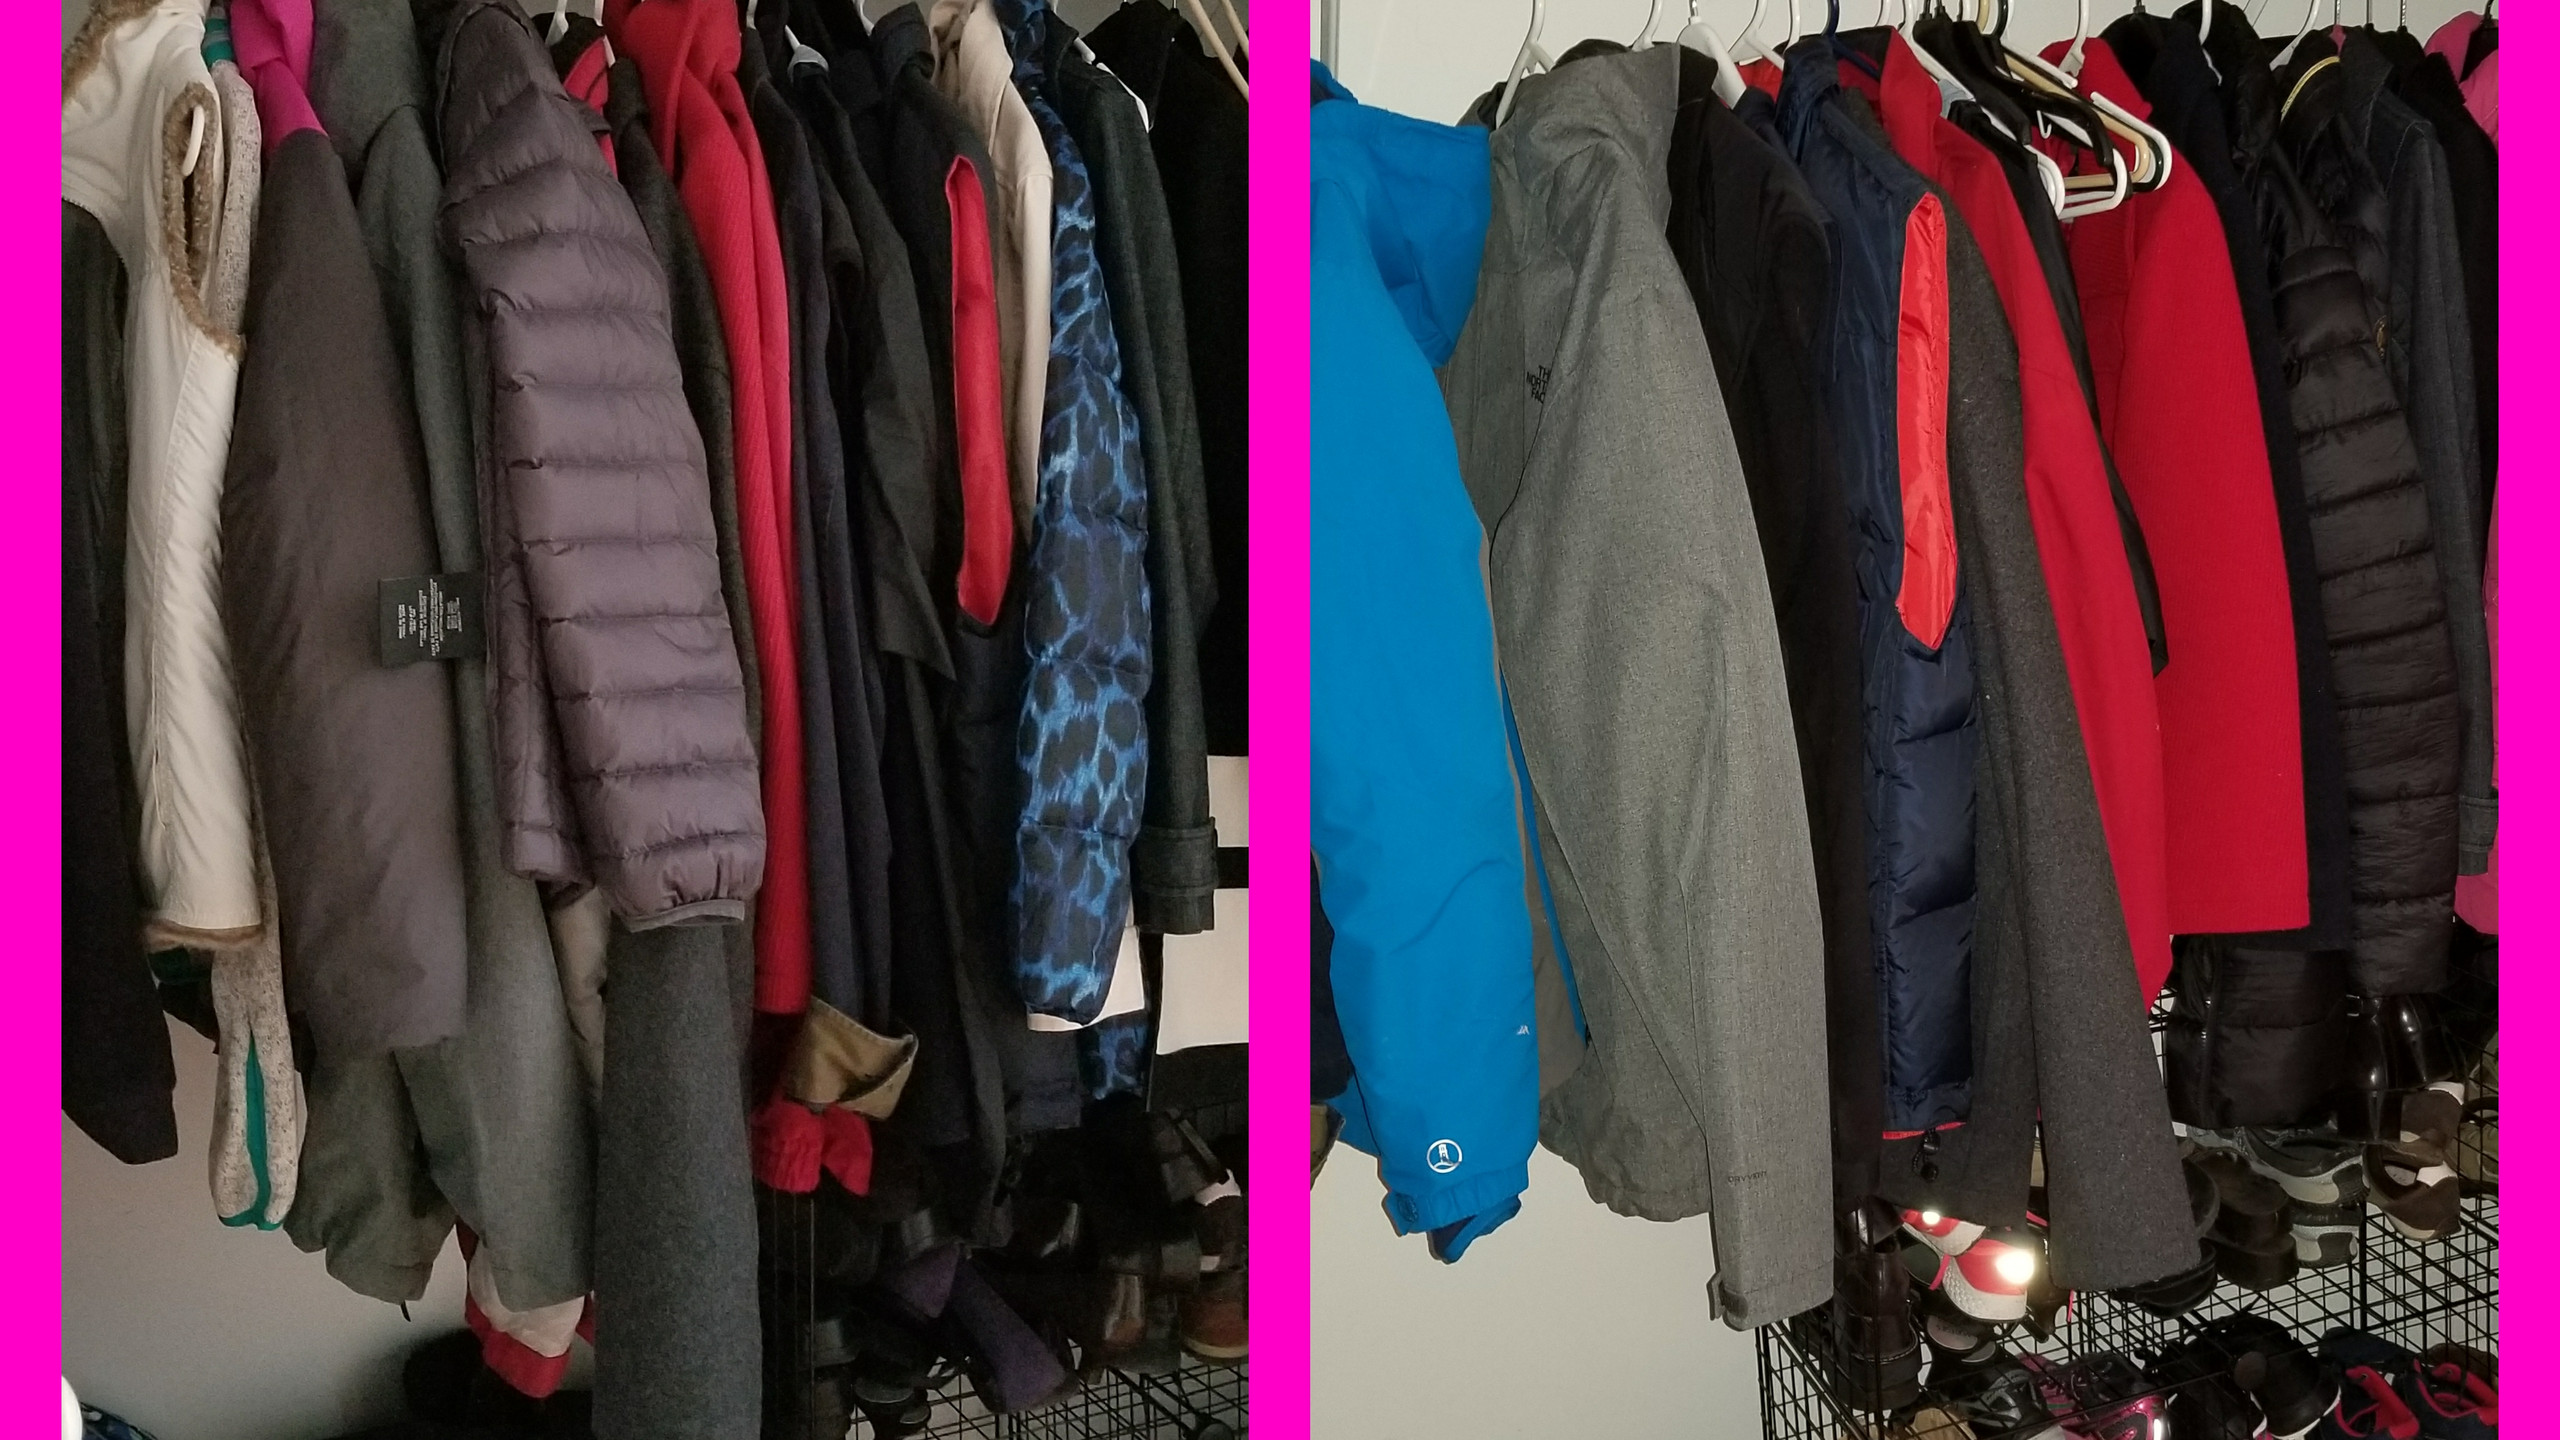 Closet, before & after